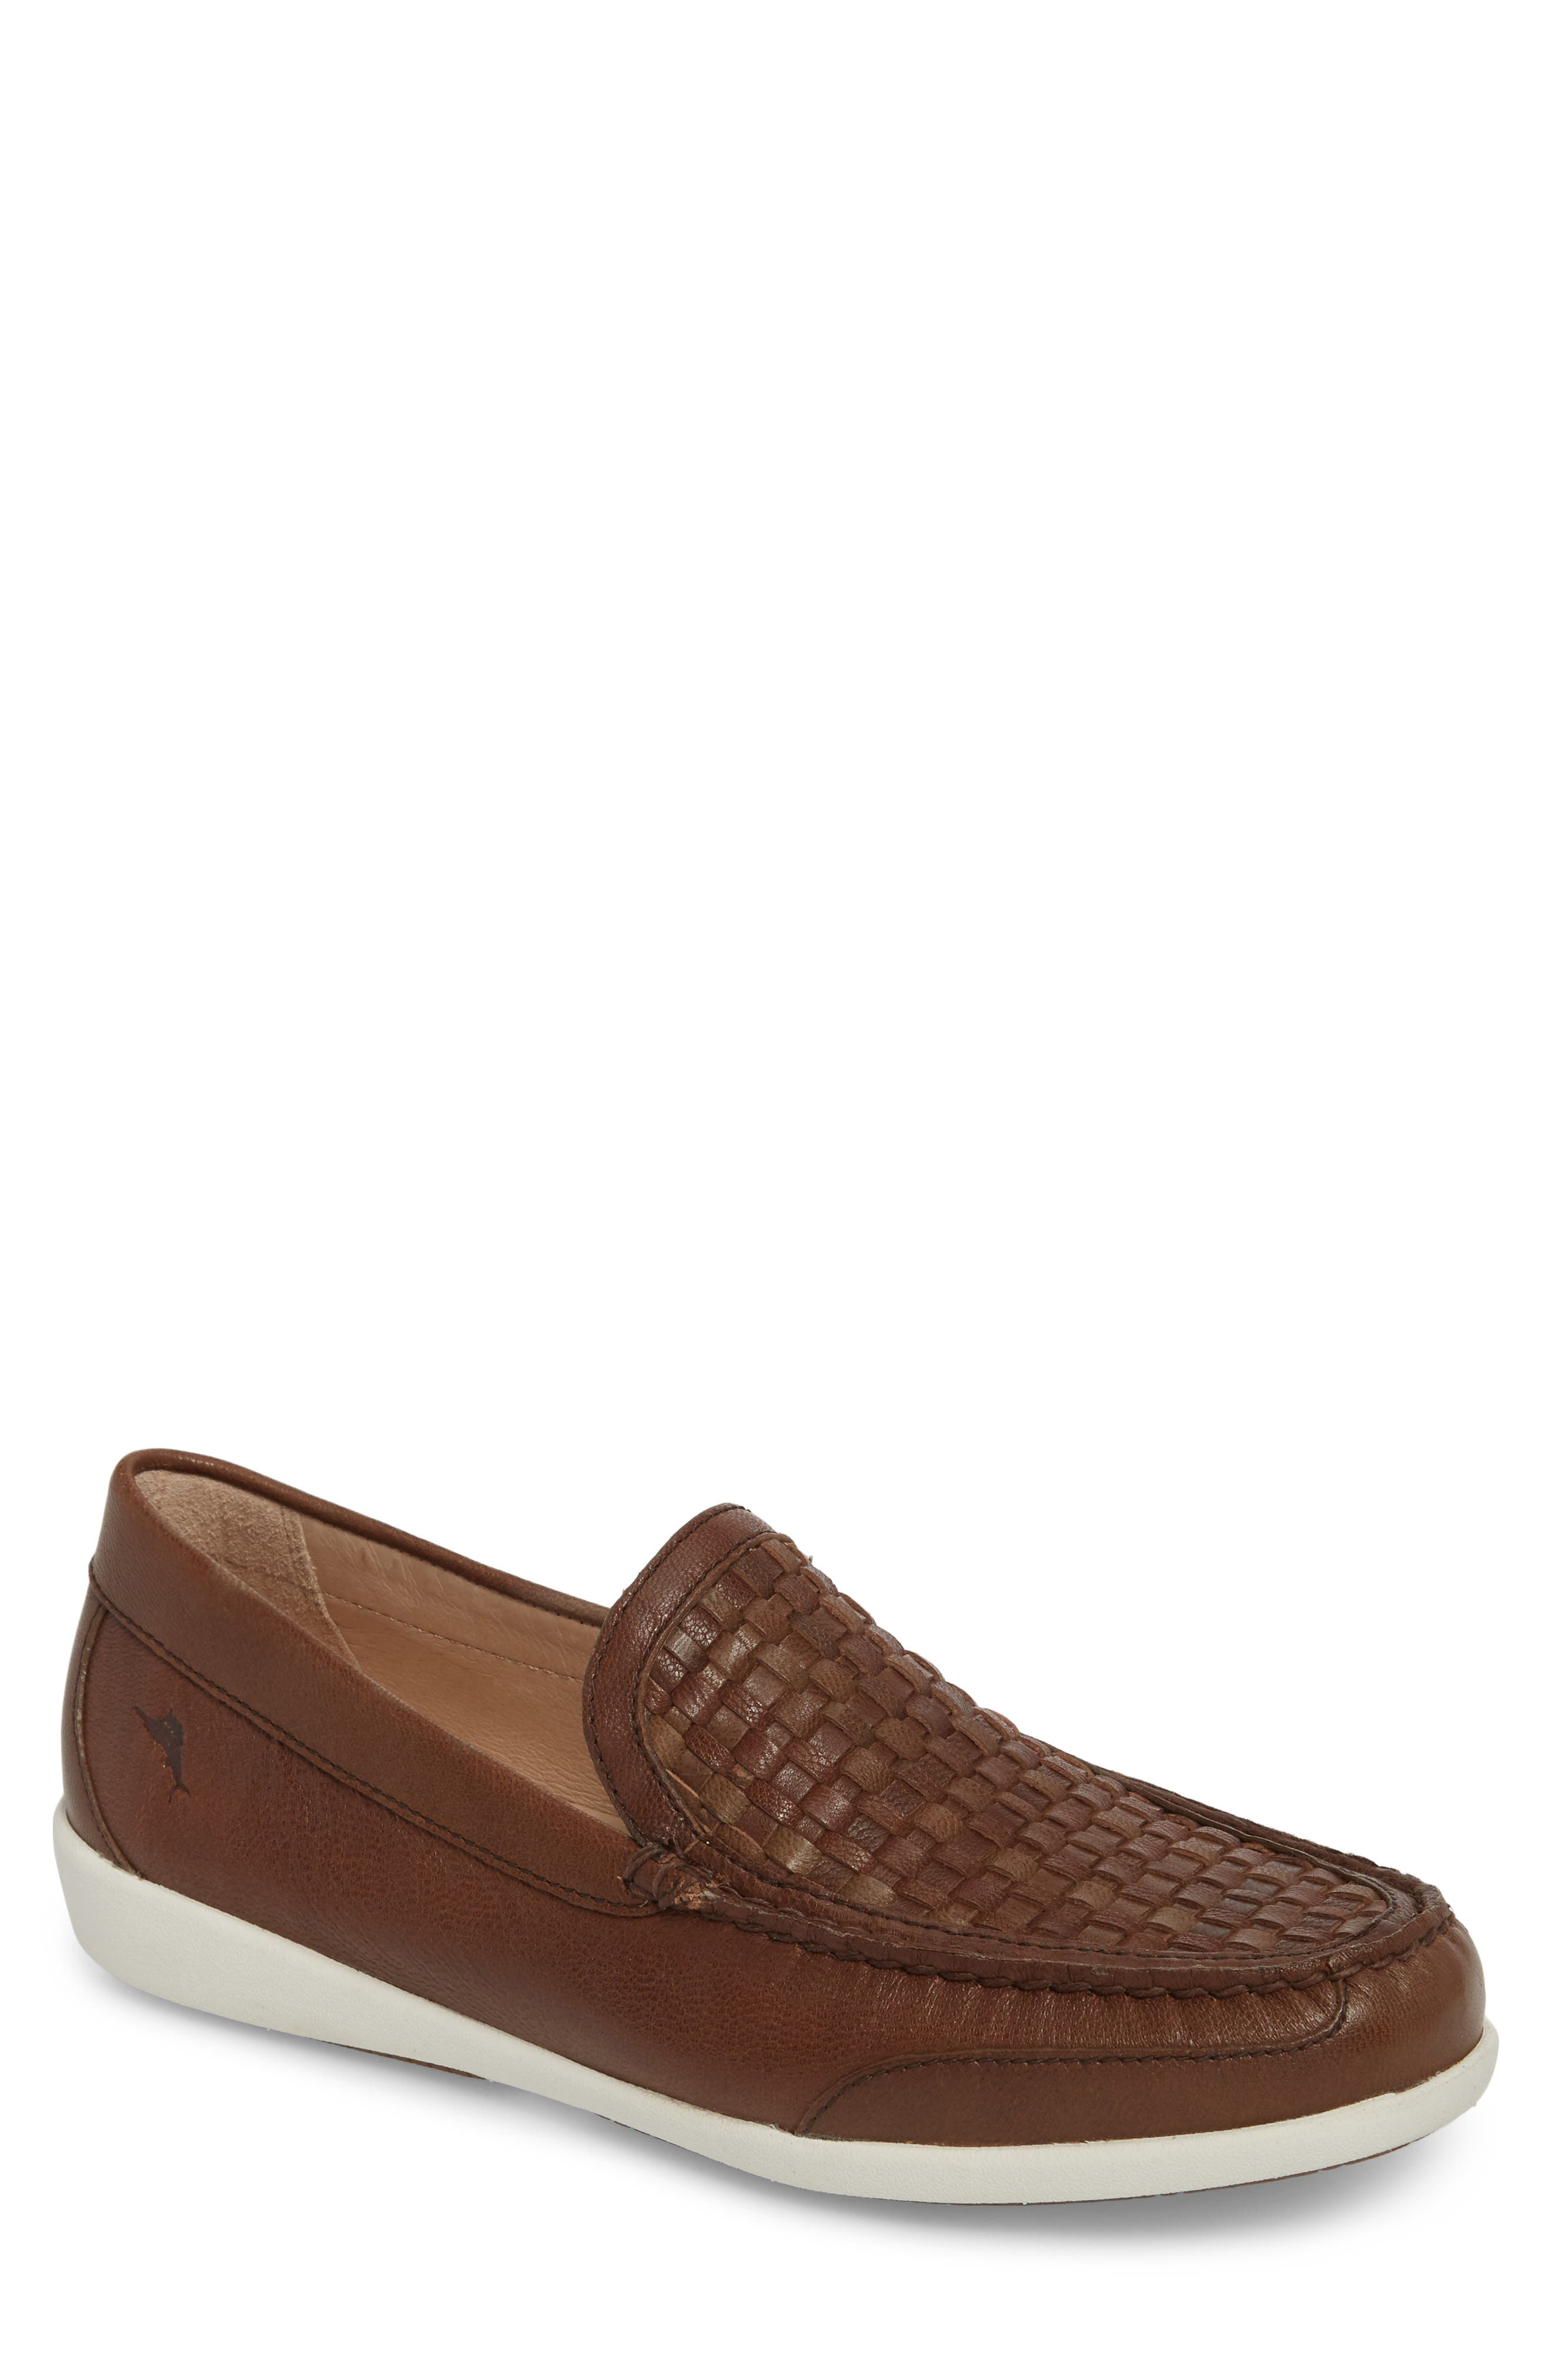 Taormina Woven Loafer,                         Main,                         color, Dark Brown Leather